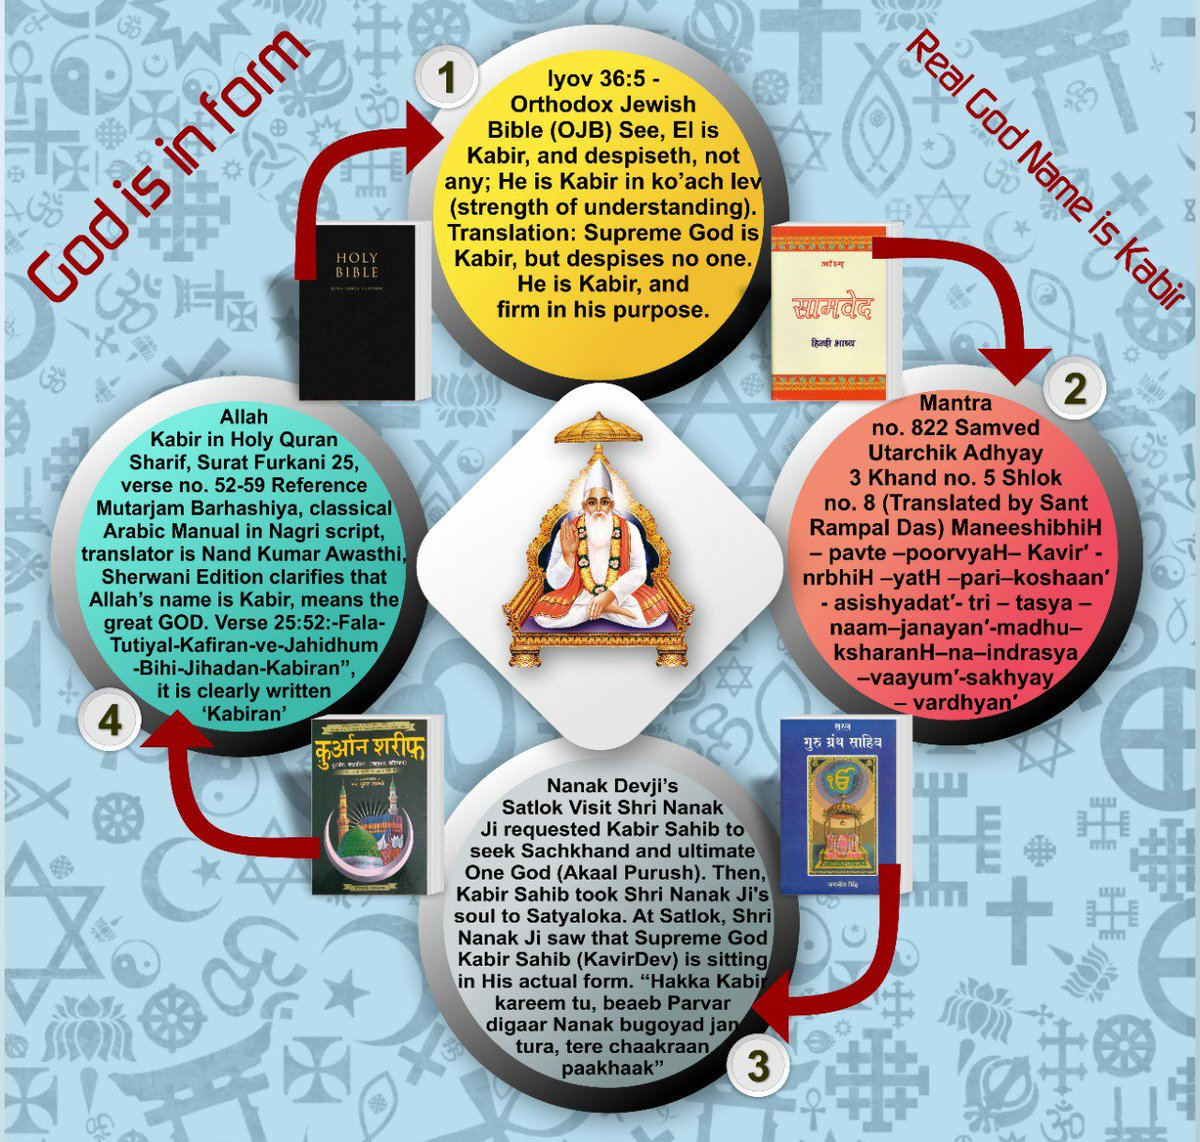 #Reality_Of_Christianity Job 36: 5 (Orthodox Jewish Bible - OJB) God is Kabir (powerful), but he does not hate people. Kabir is Almighty and rational.